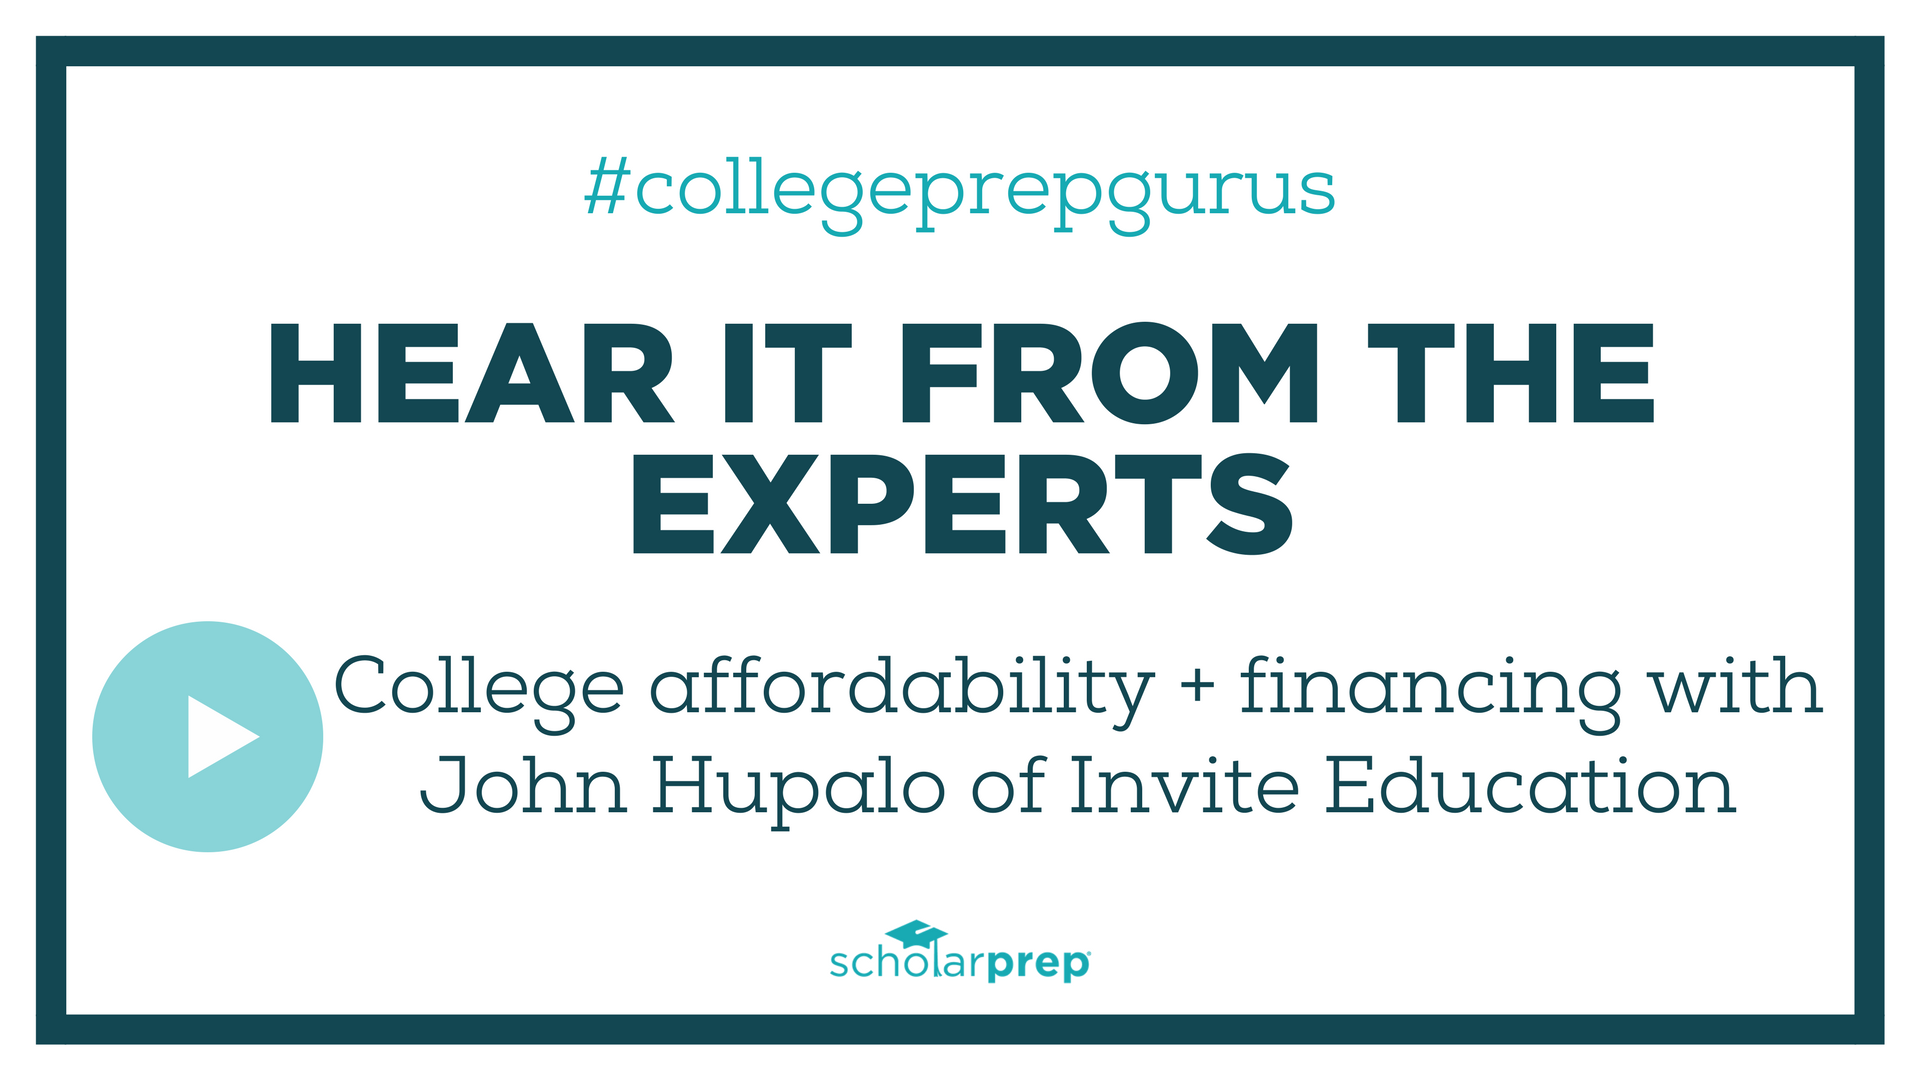 College affordability with John Hupalo of Invite Education